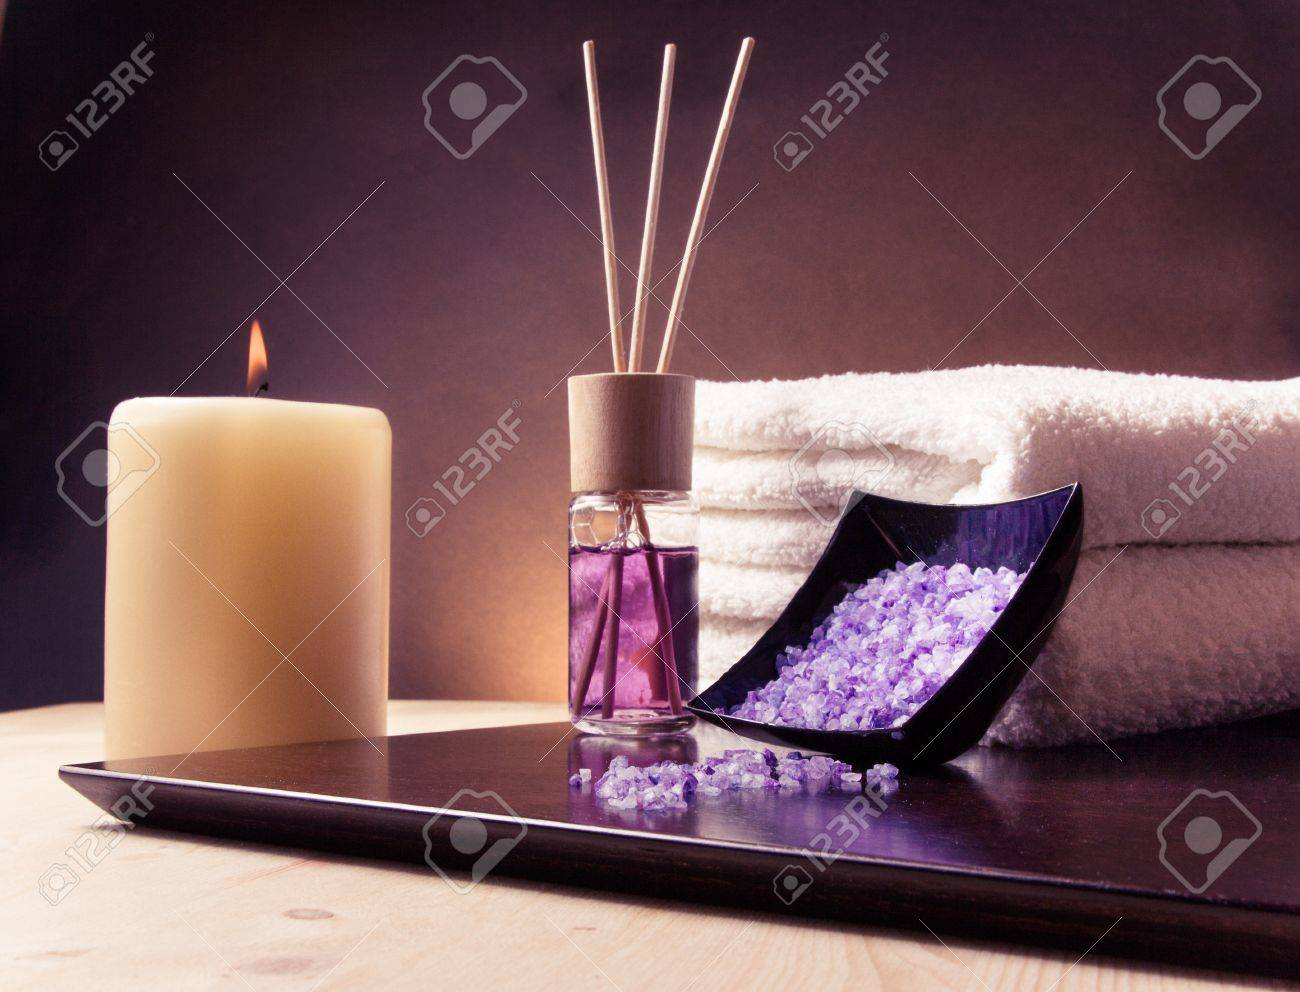 Spa massage border background with towel stacked, perfume diffuser and sea salt, violet gradient background - 29035809